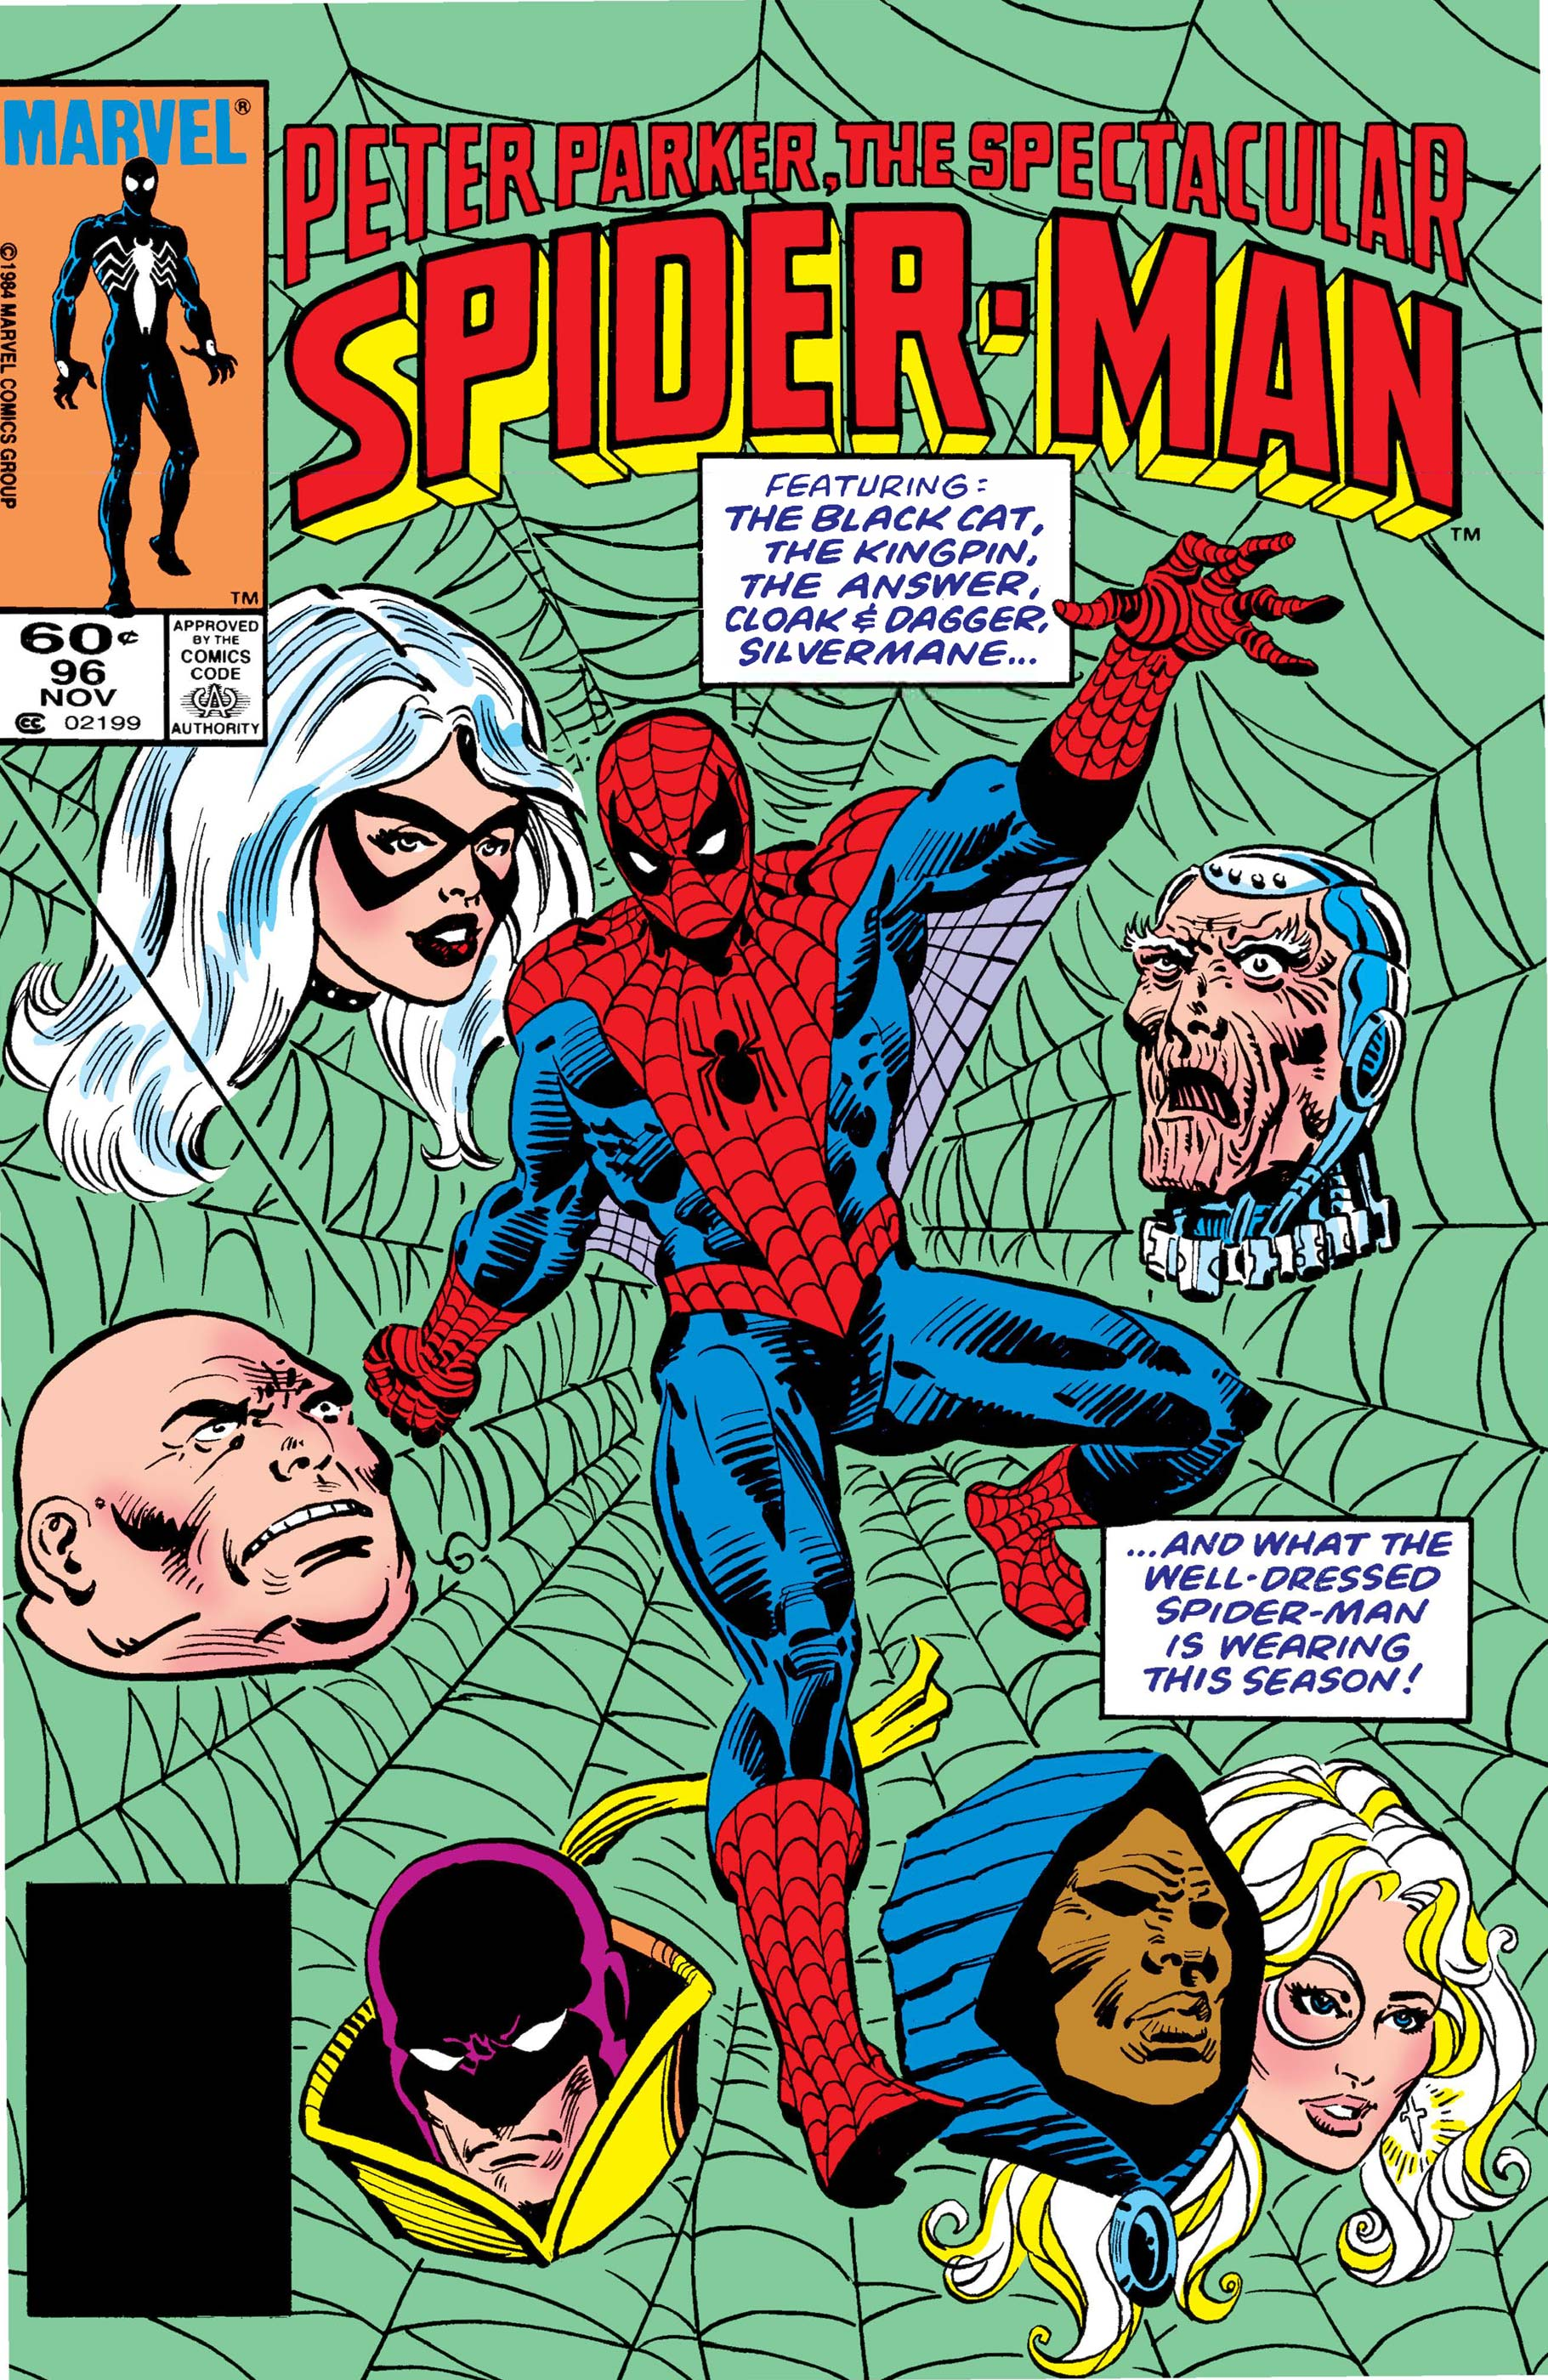 Peter Parker, the Spectacular Spider-Man (1976) #96